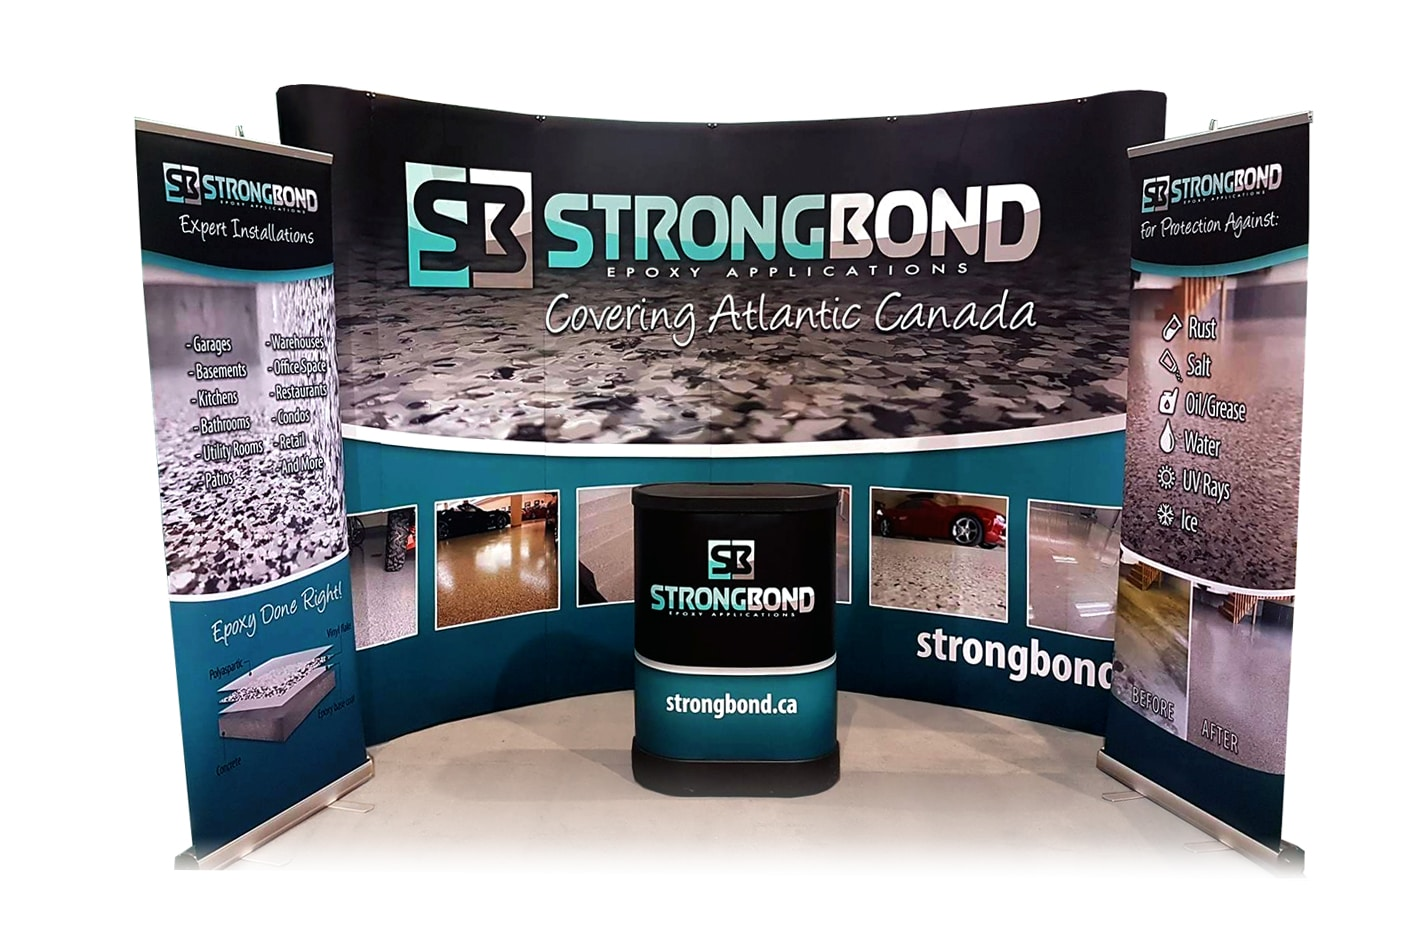 Strong Bond Tradeshow Display